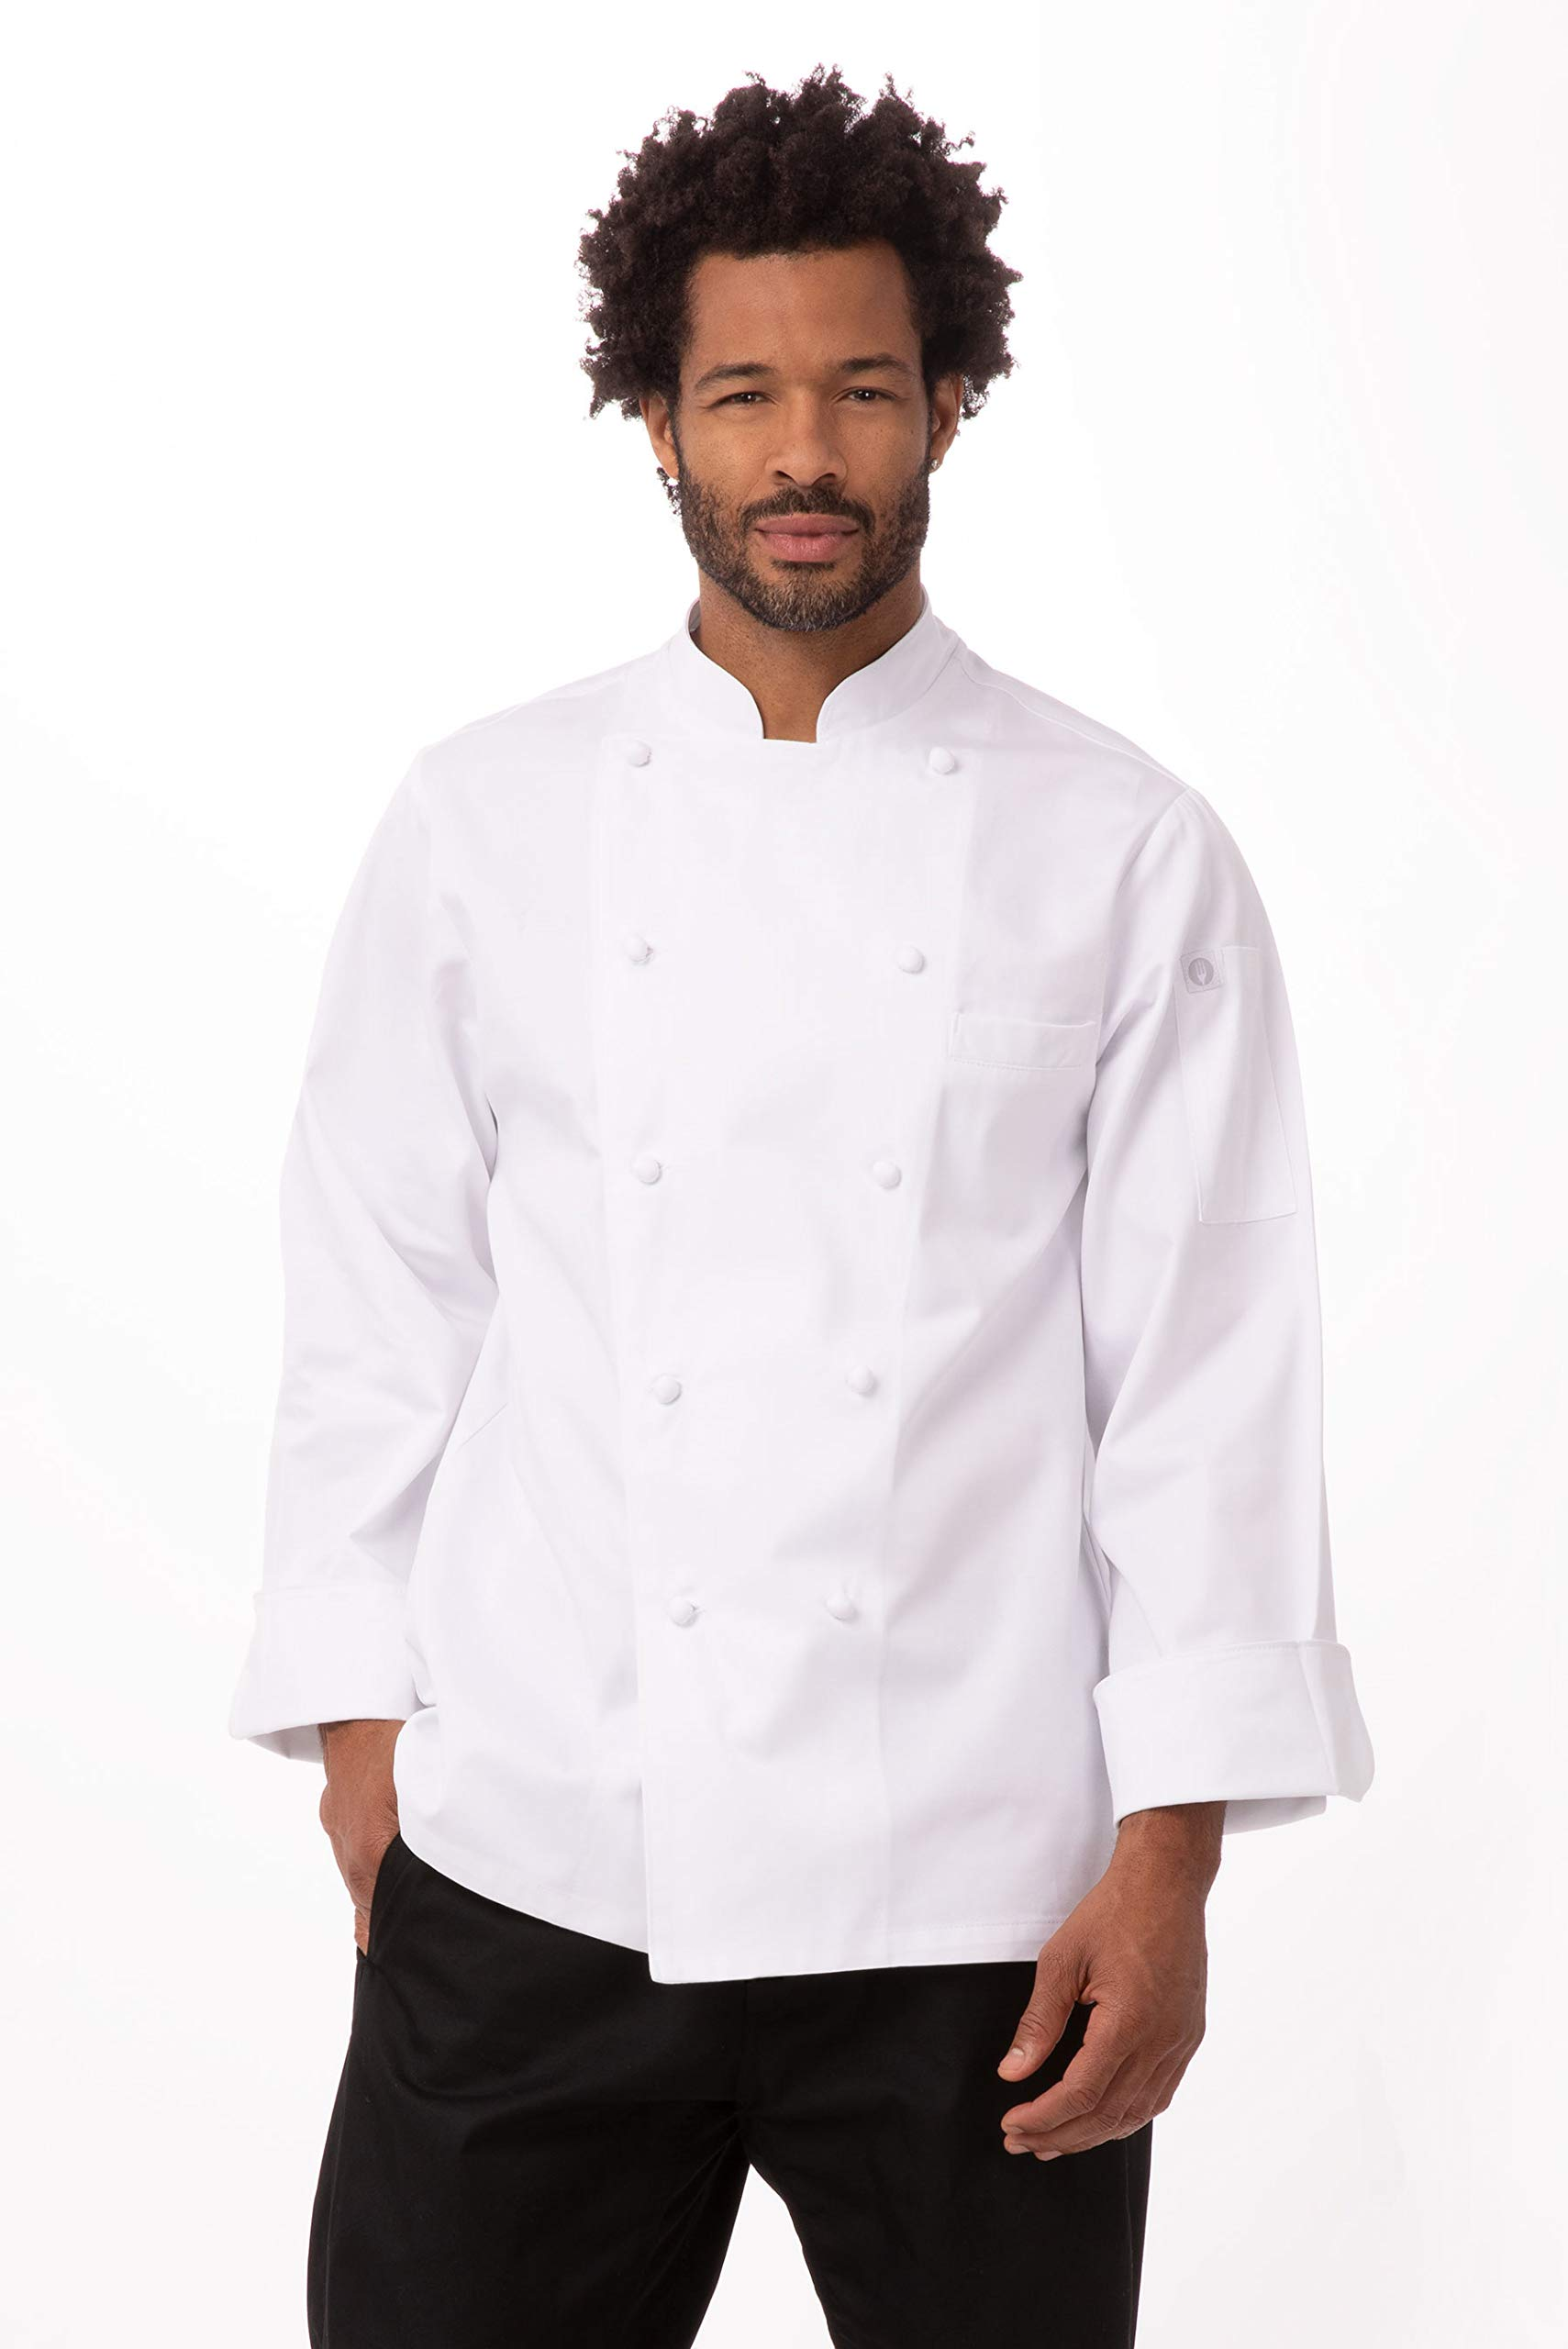 Chef Works Men's Henri Executive Chef Coat, White, 38 by Chef Works